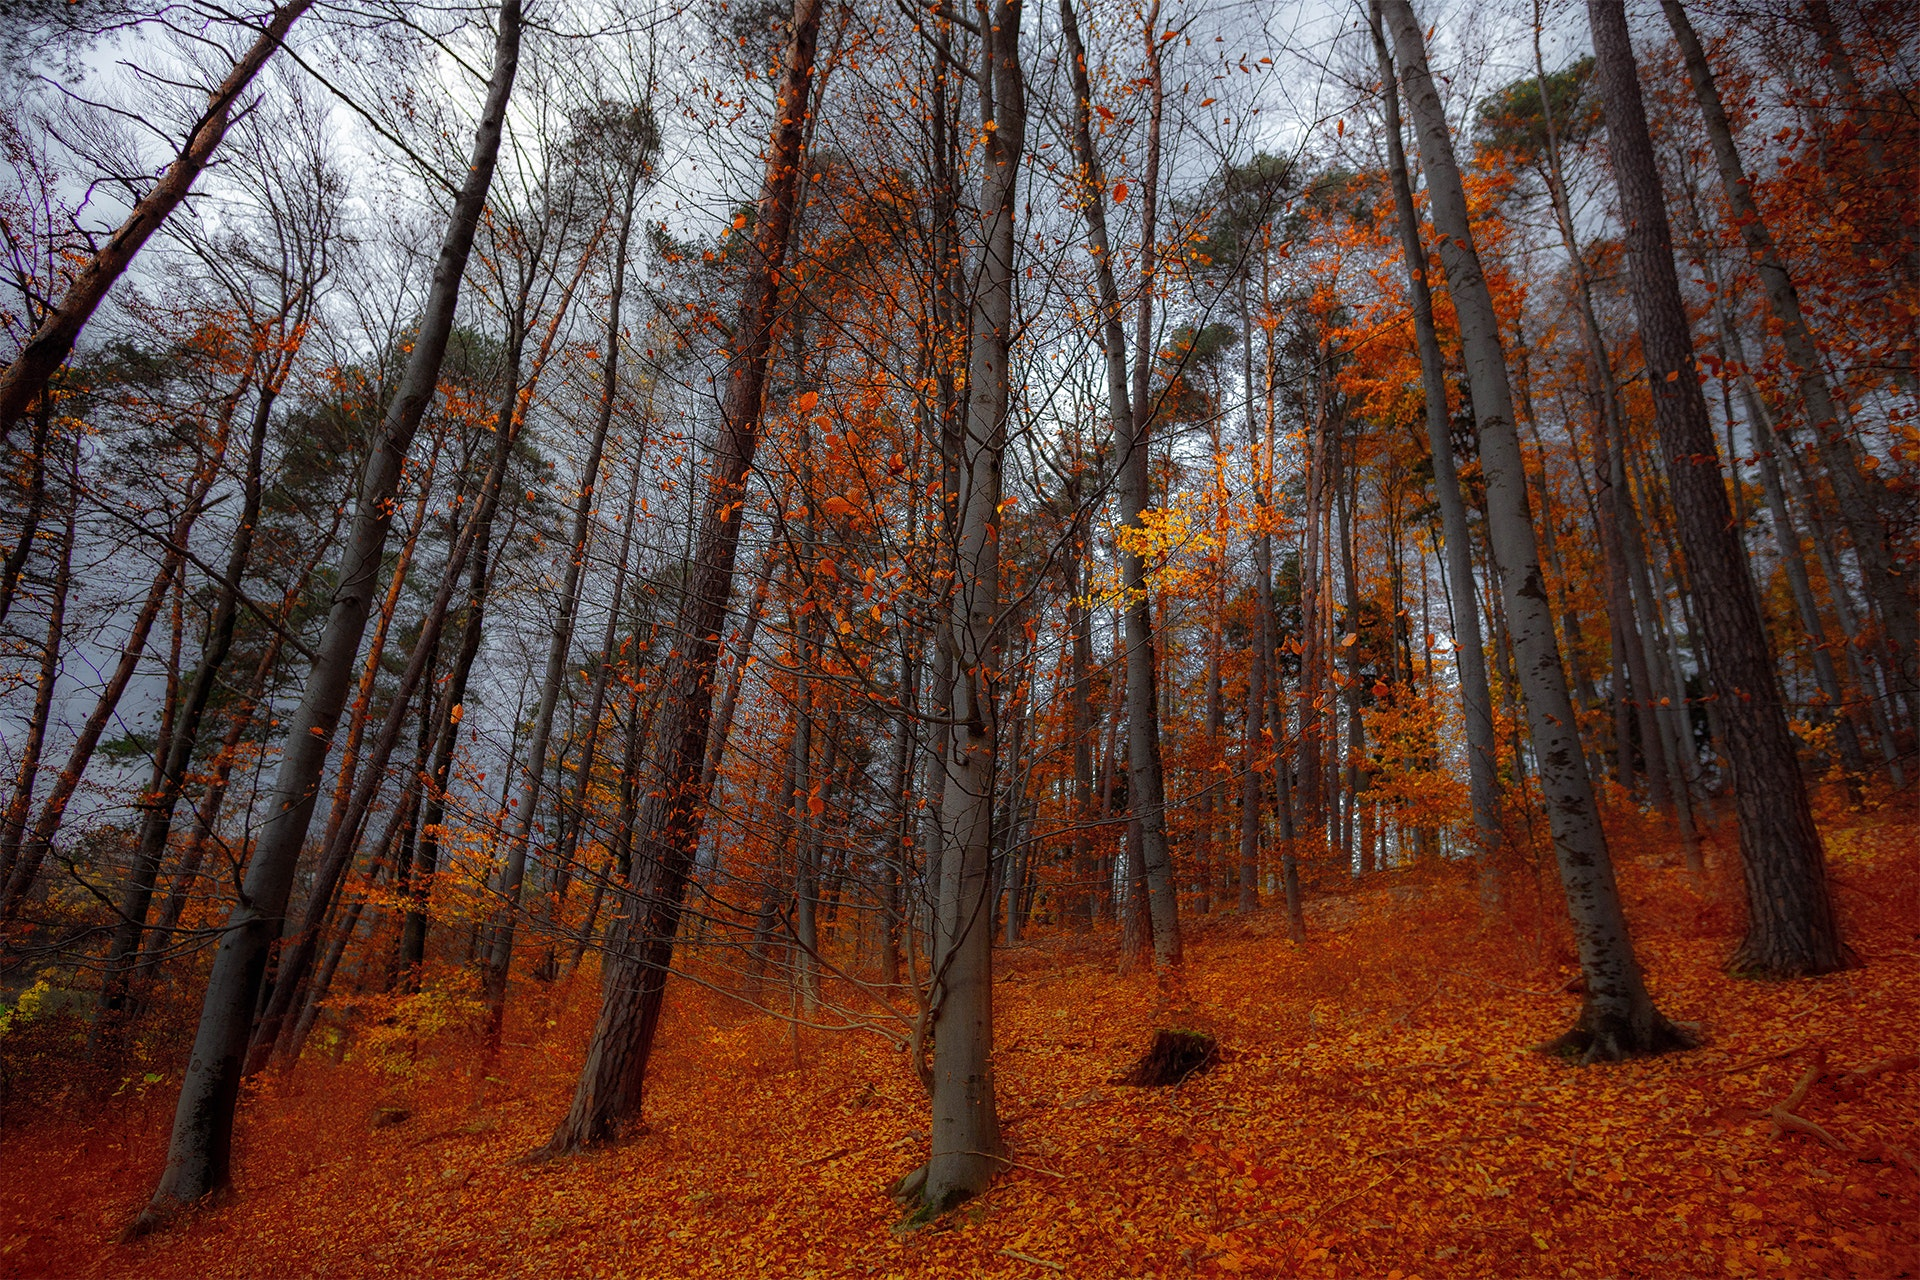 Orange Leave Trees, Autumn, Light, Trees, Tree trunks, HQ Photo